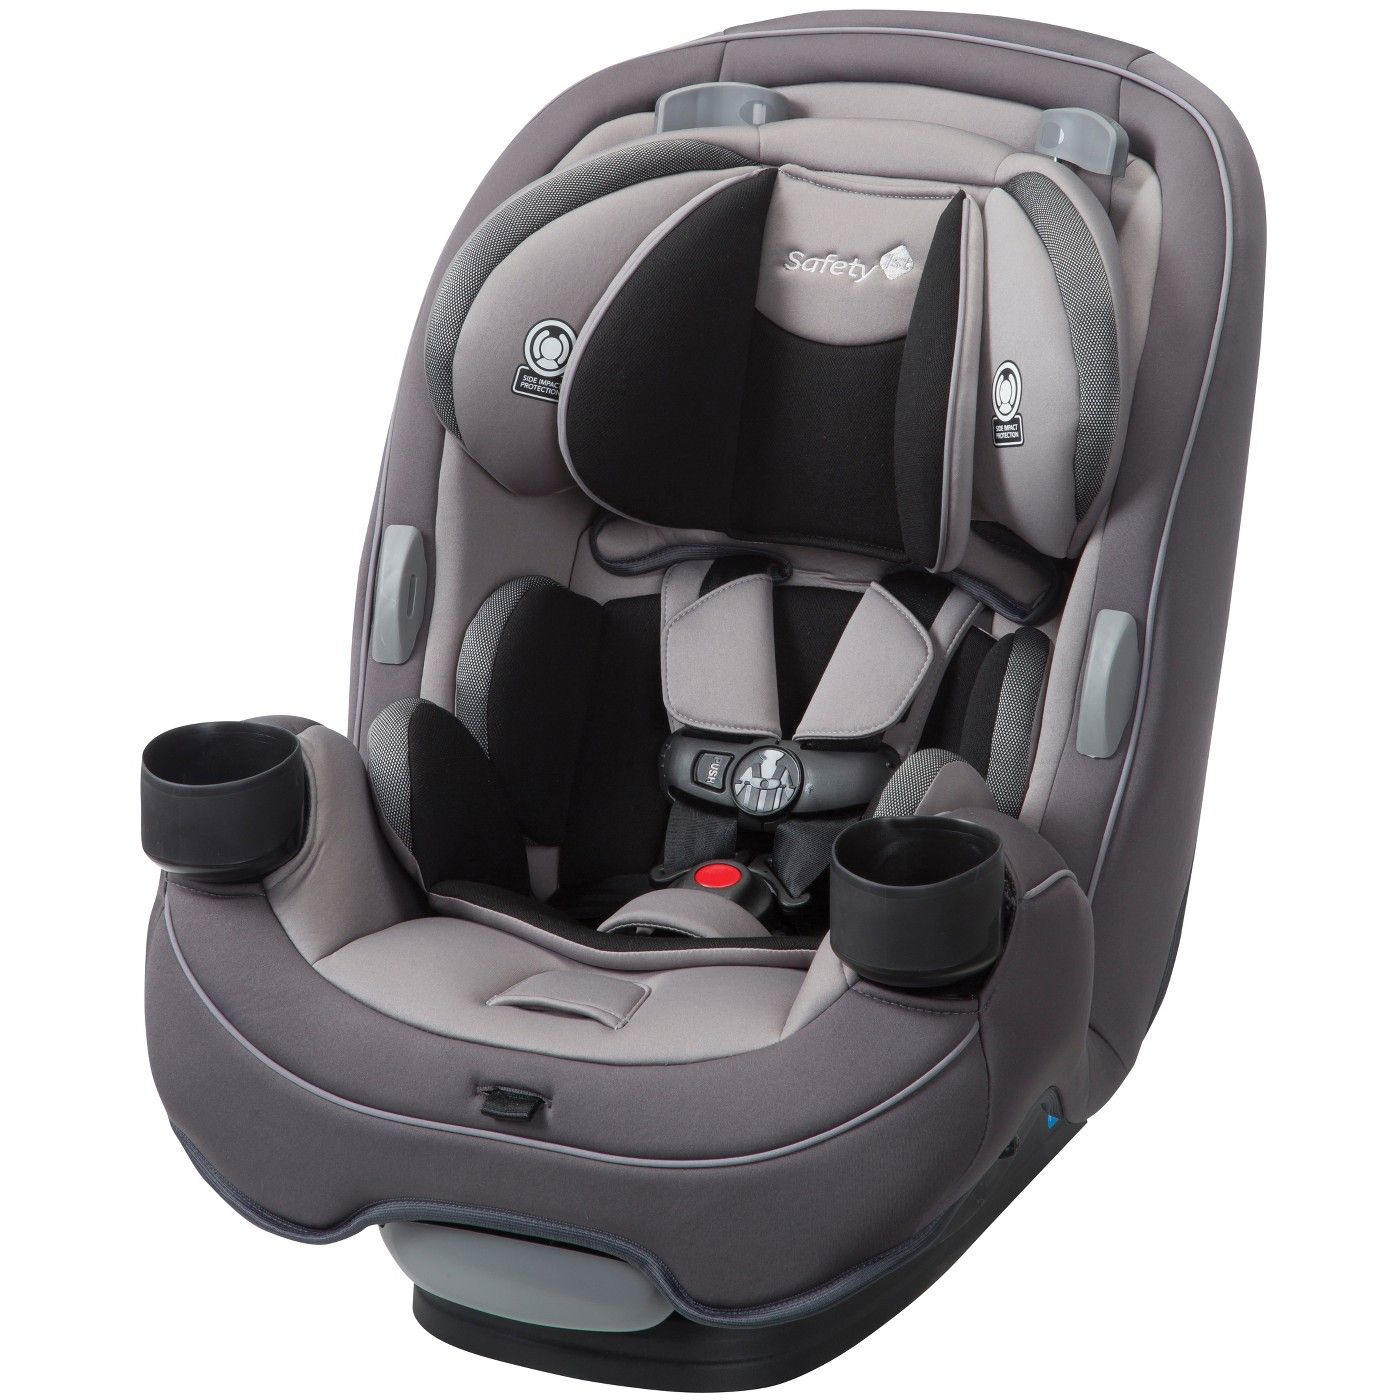 Safety 1st Grow and Go 3in1 Convertible Car Seat